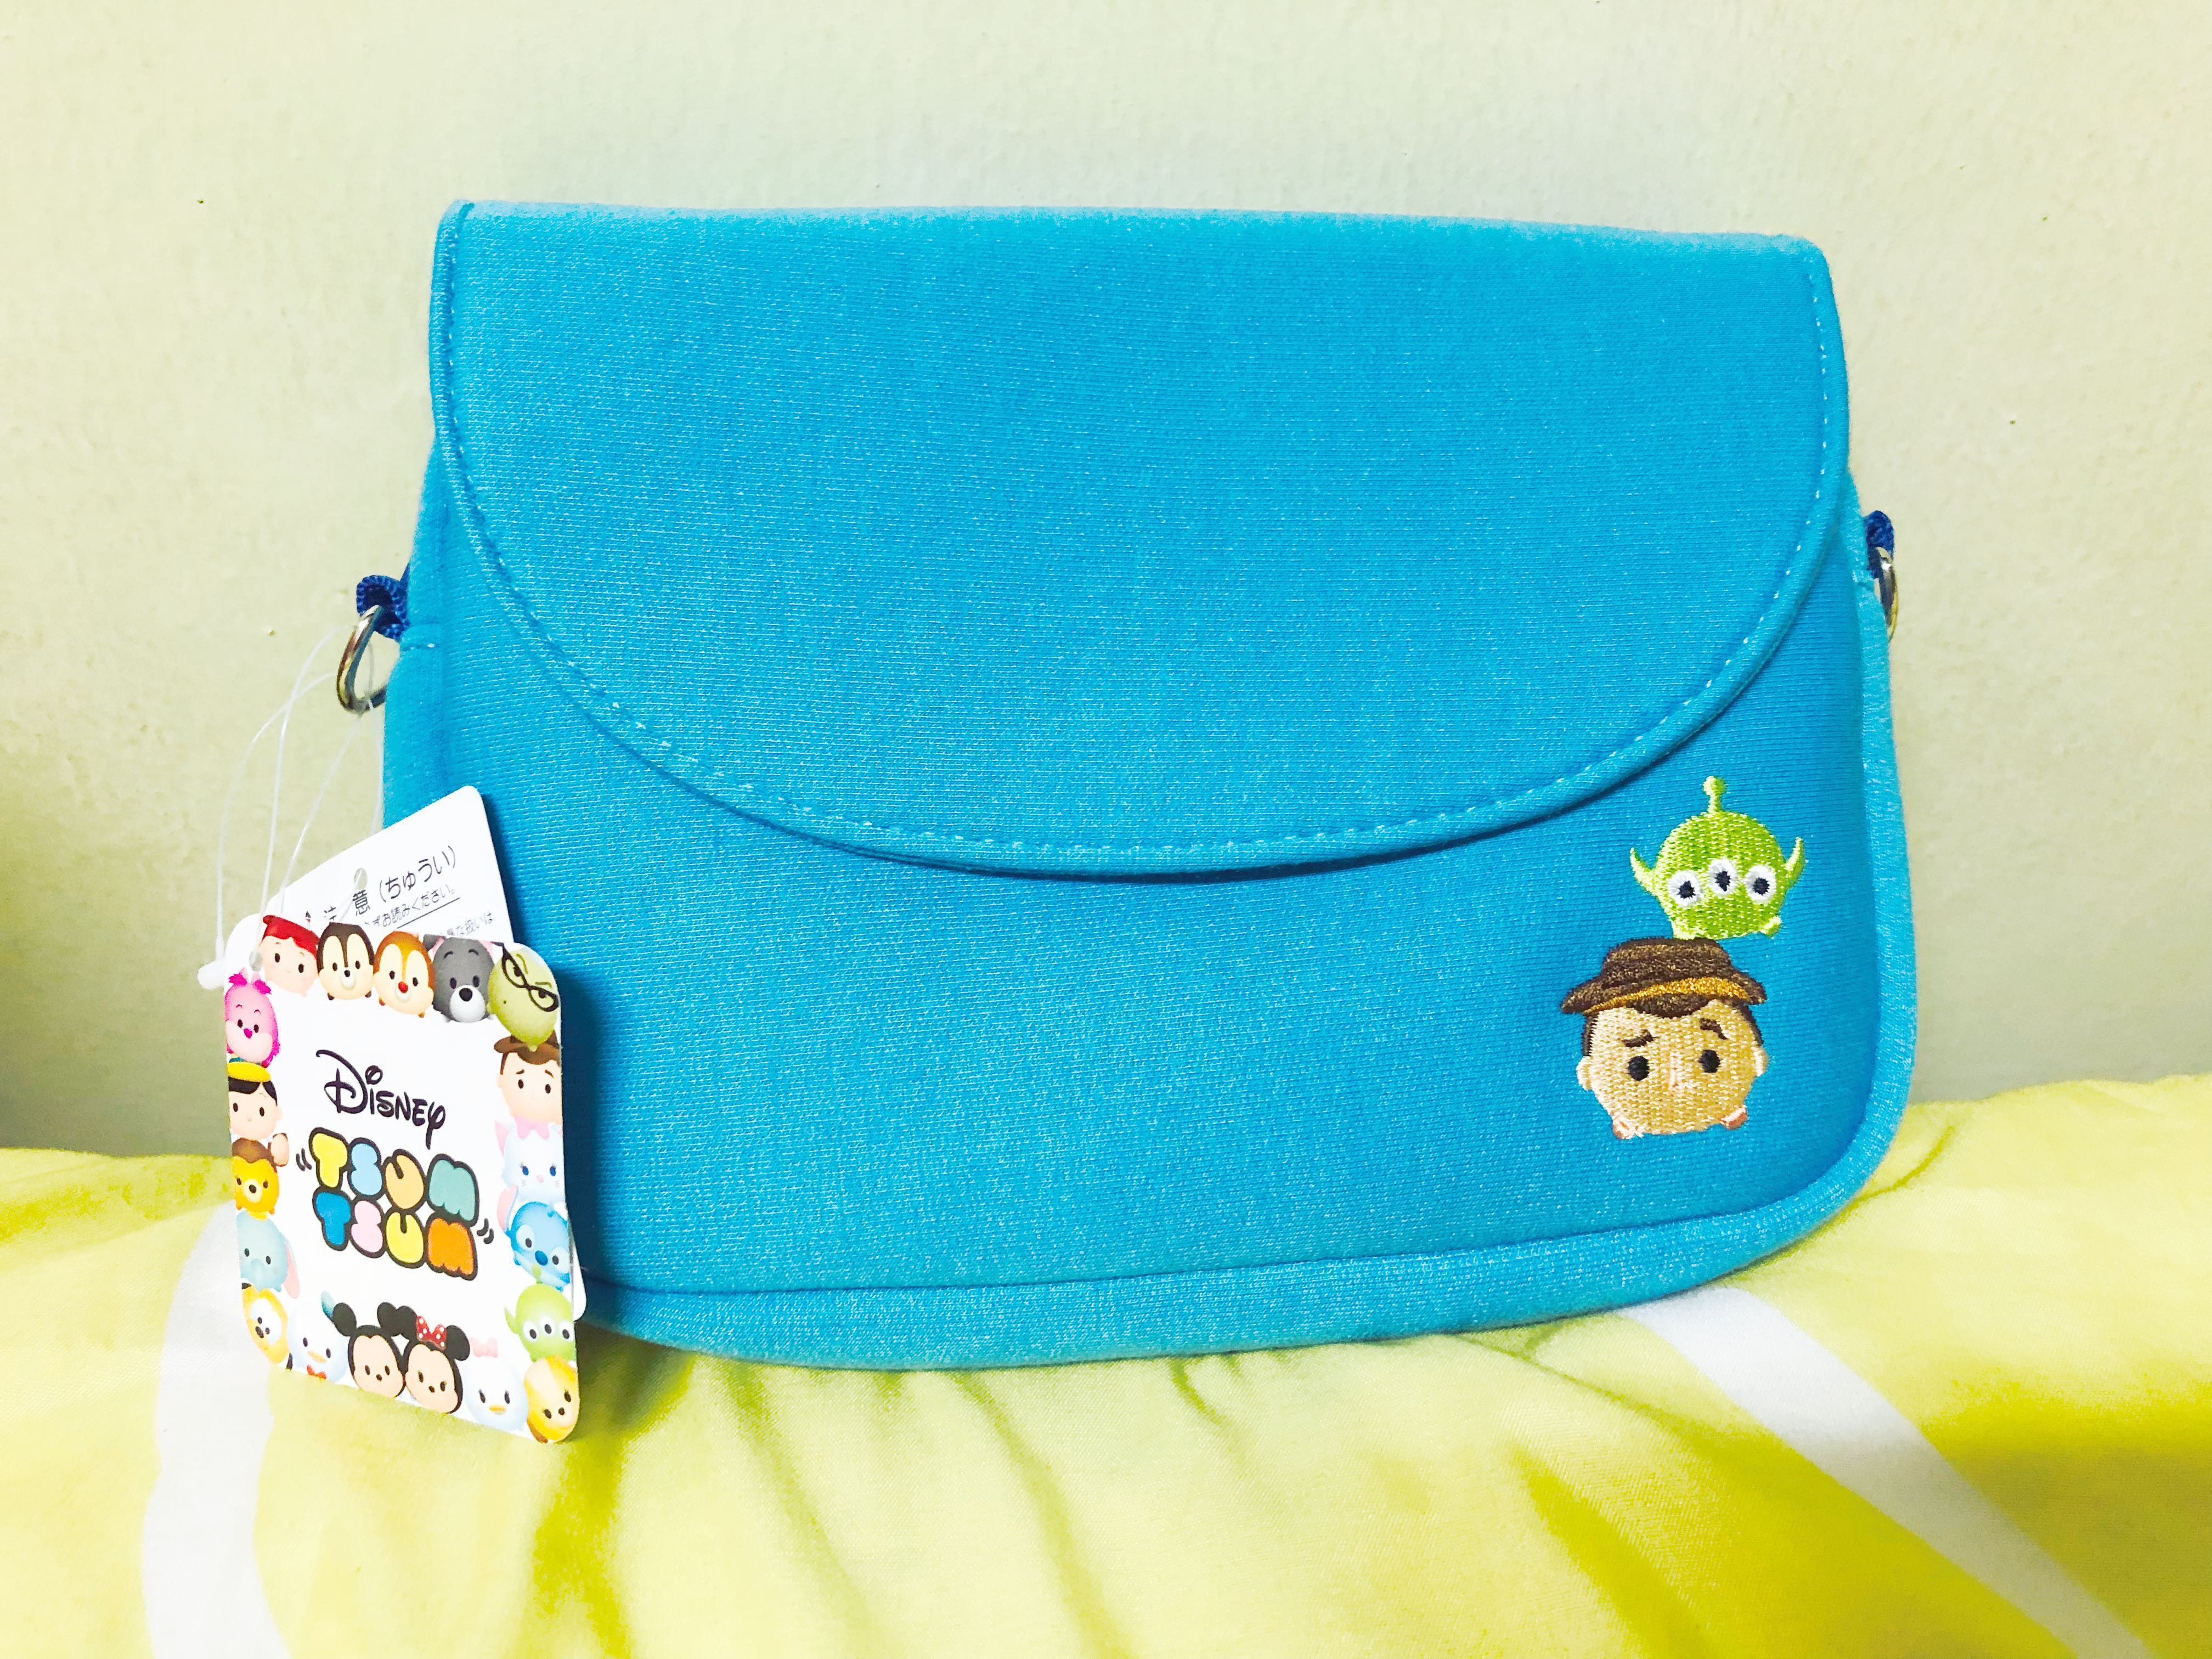 Disney Tsum Tsum Toy Story Sling Bag Pouch, Women's Fashion, Bags & Wallets, Sling Bags on Carousell